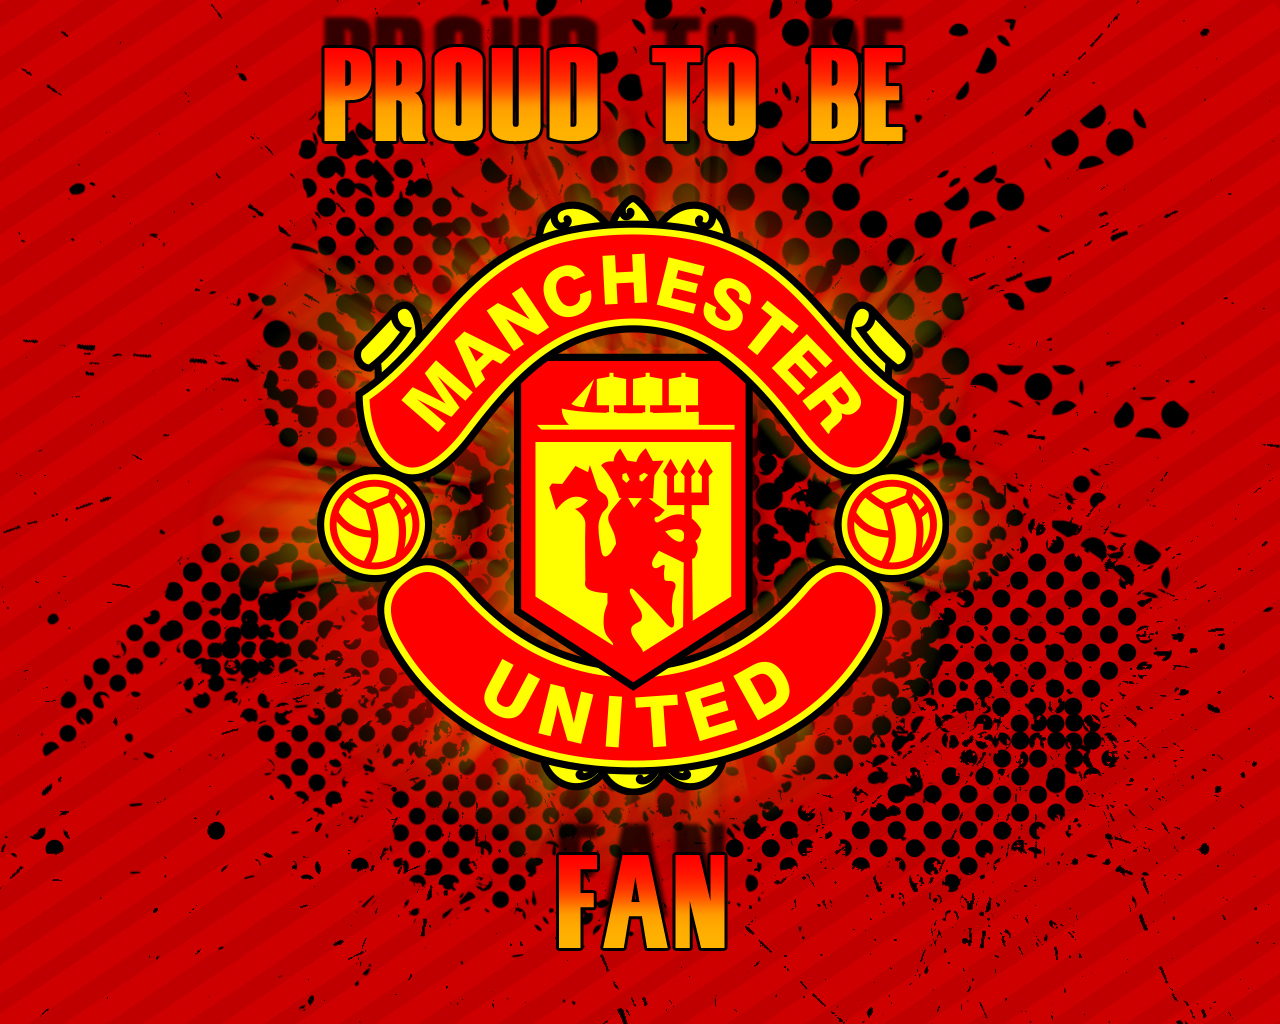 4k ultra hd creative manchester united pictures 4k ultra hd creative manchester united